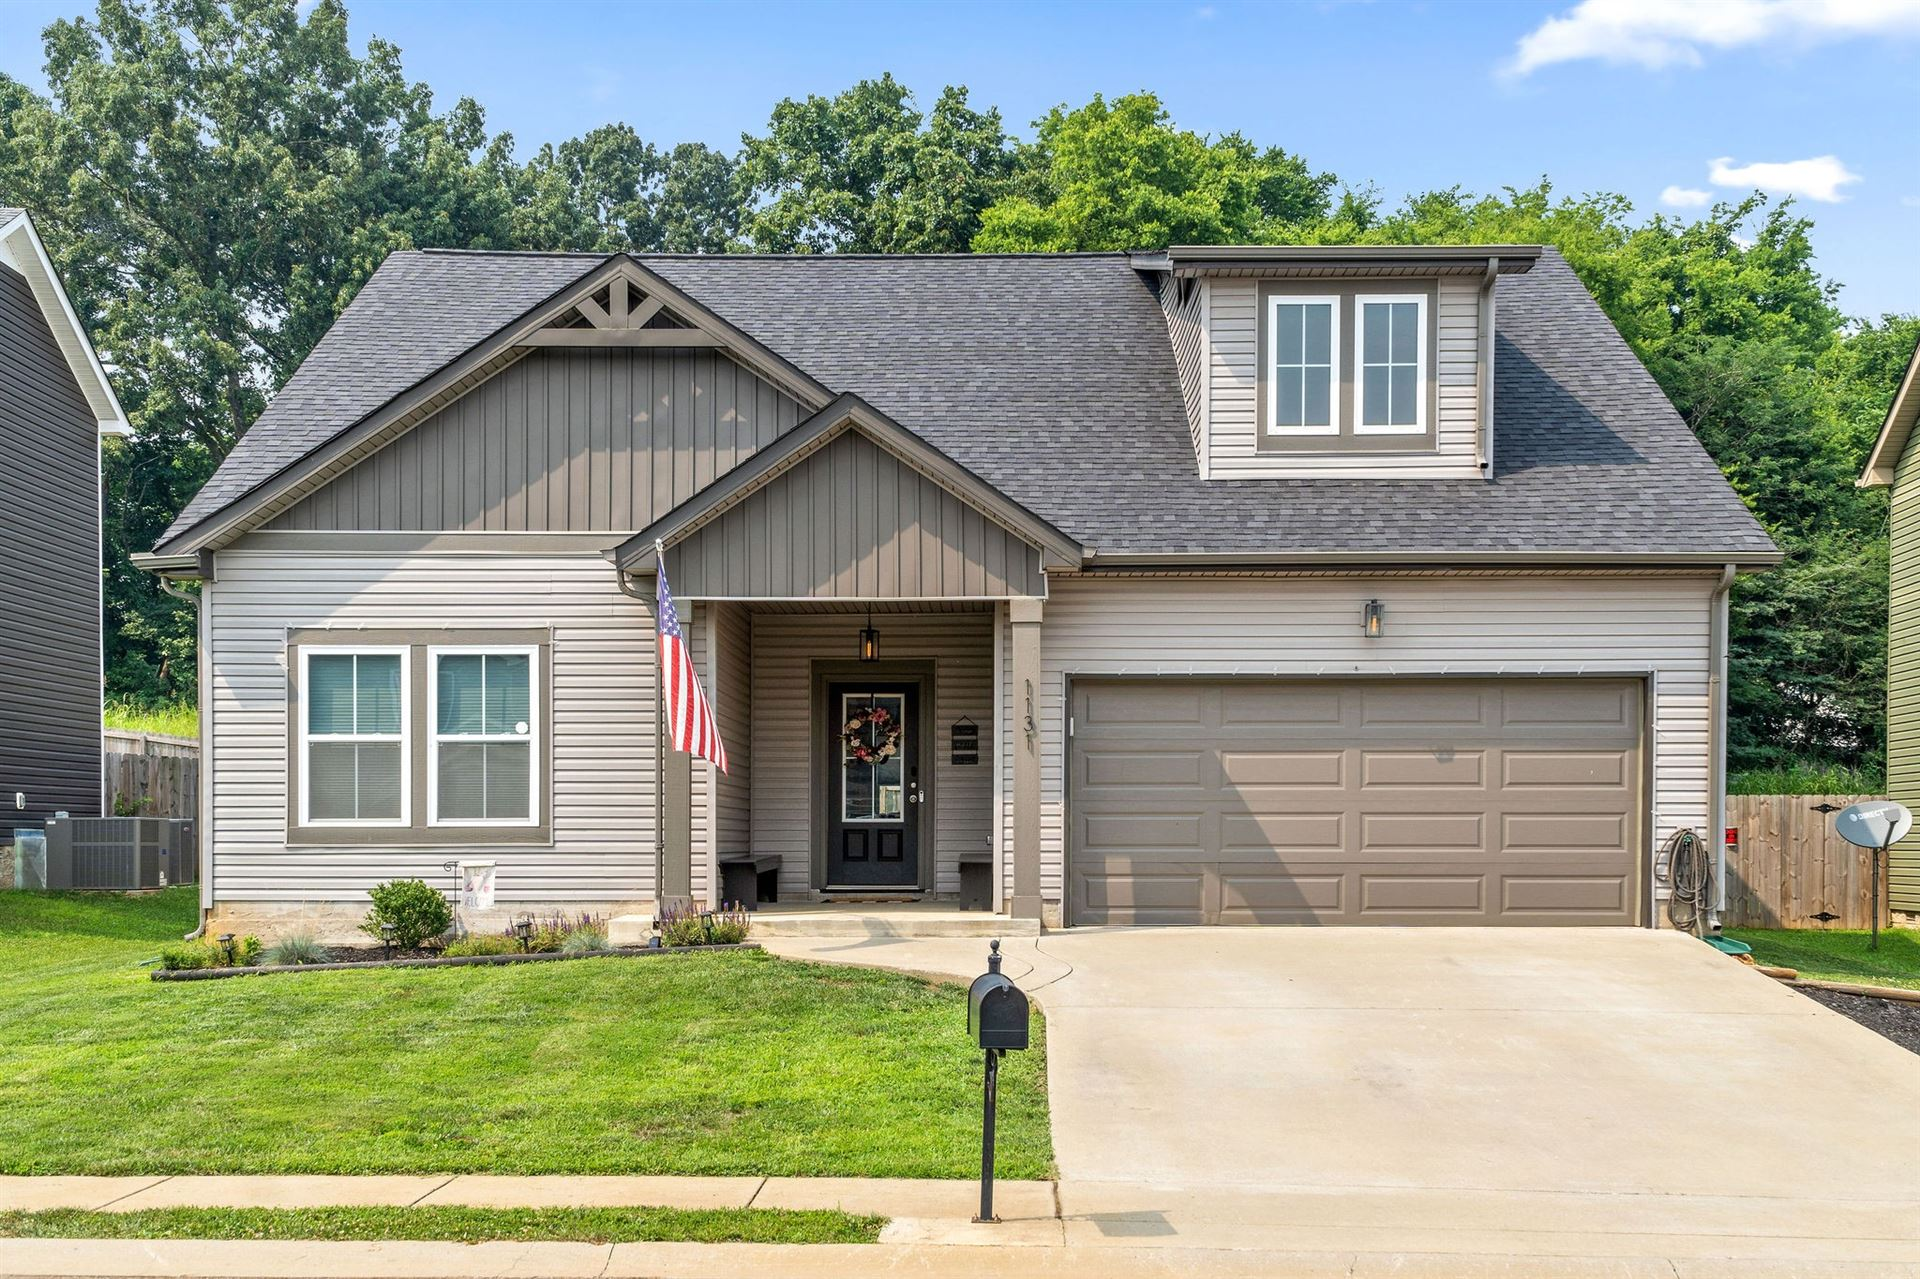 1131 Eagles View Dr, Clarksville, TN 37040 - MLS#: 2275040